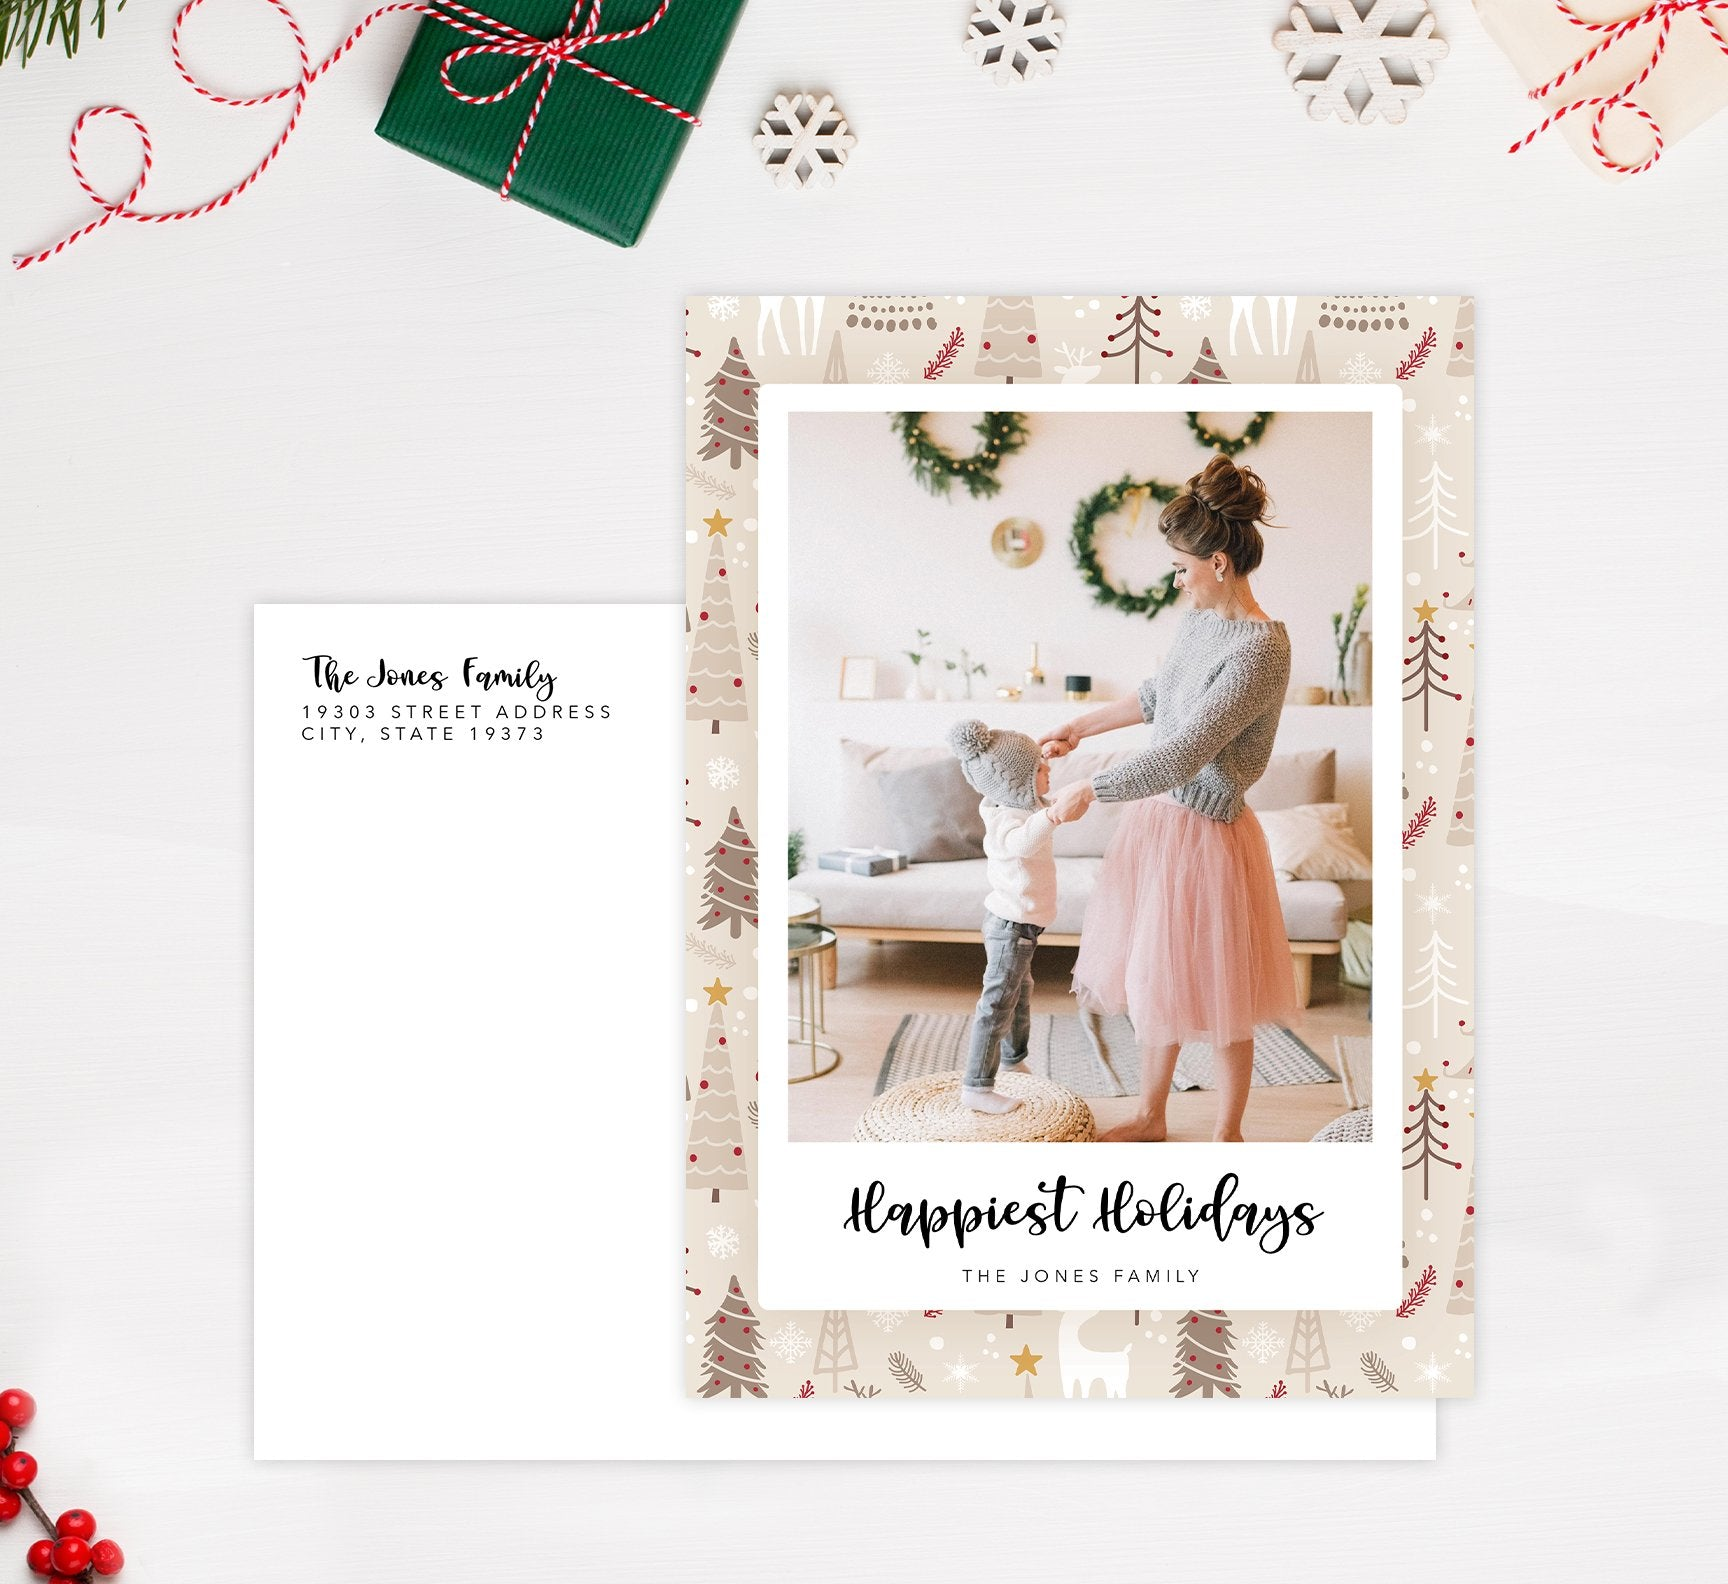 Woodland Holiday Card Mockup; Holiday card with envelope and return address printed on it.